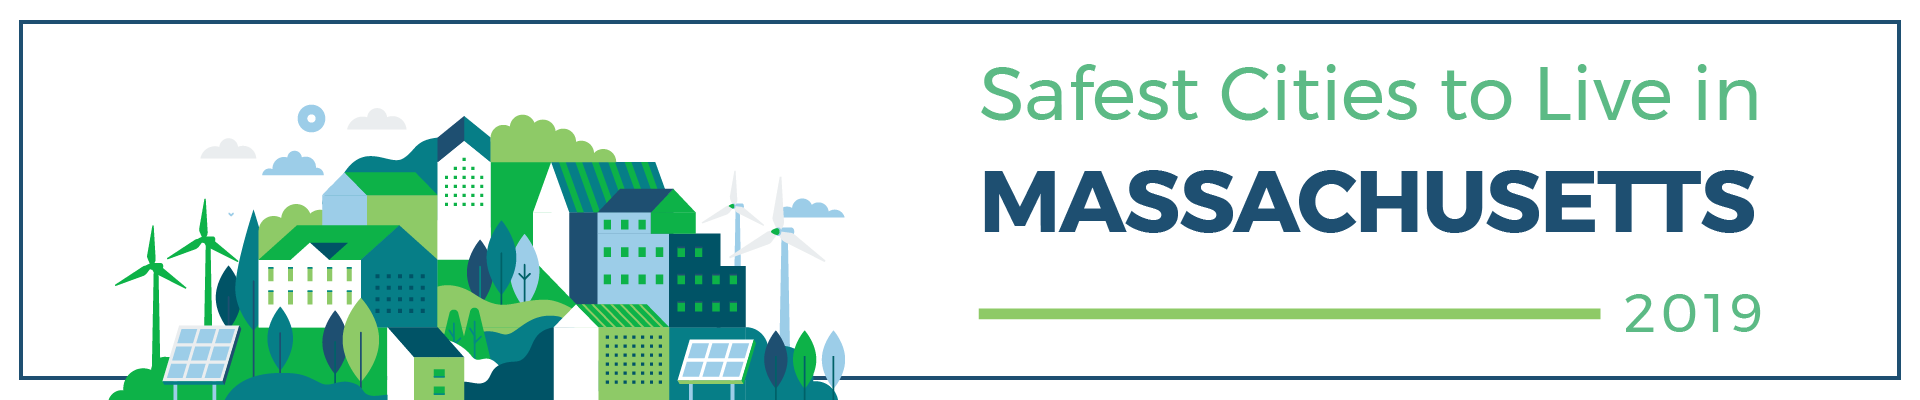 header - safest_cities_massachusetts_2019